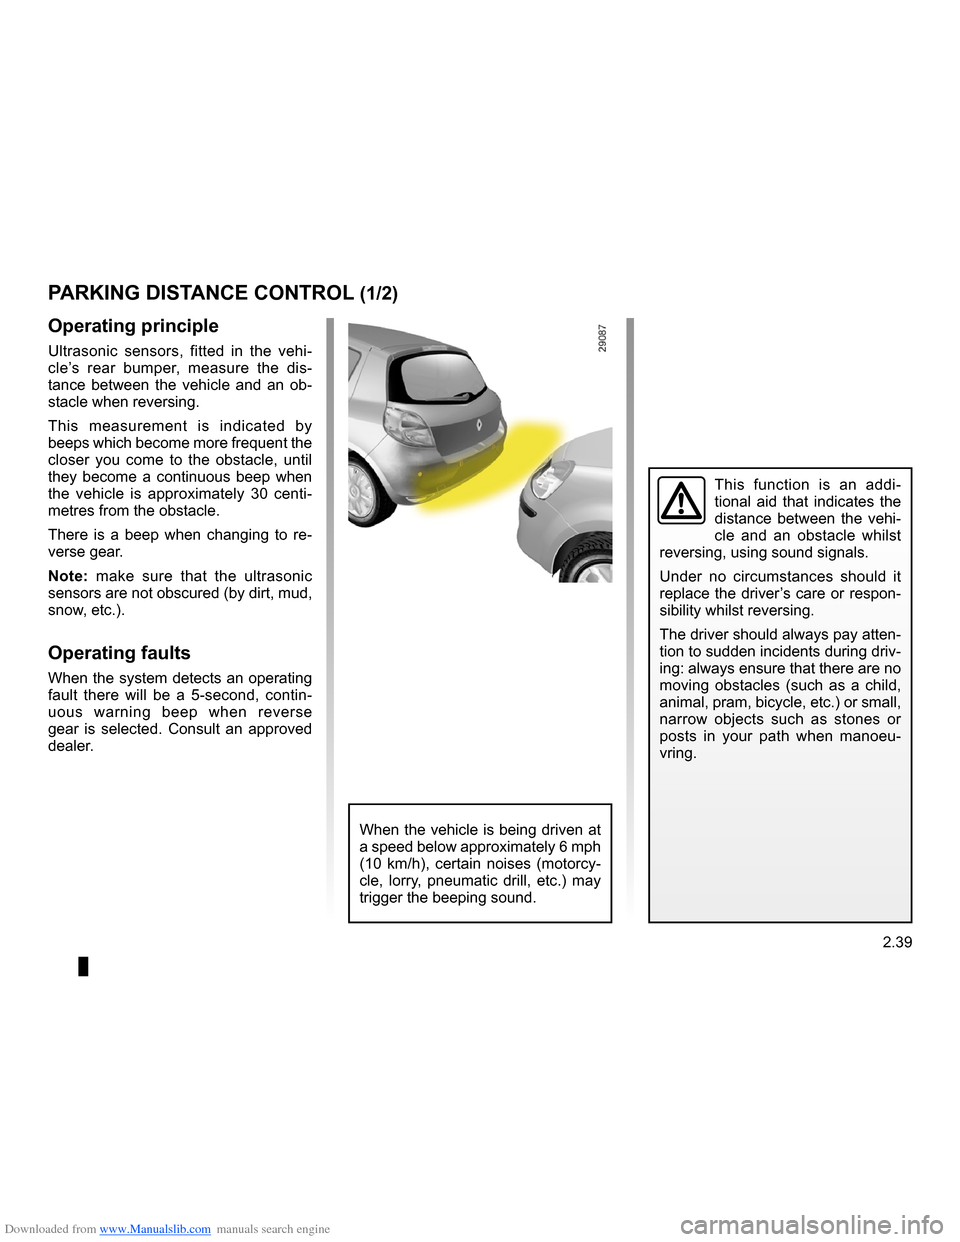 RENAULT CLIO 2009 X85 / 3.G Owners Manual, Page 131